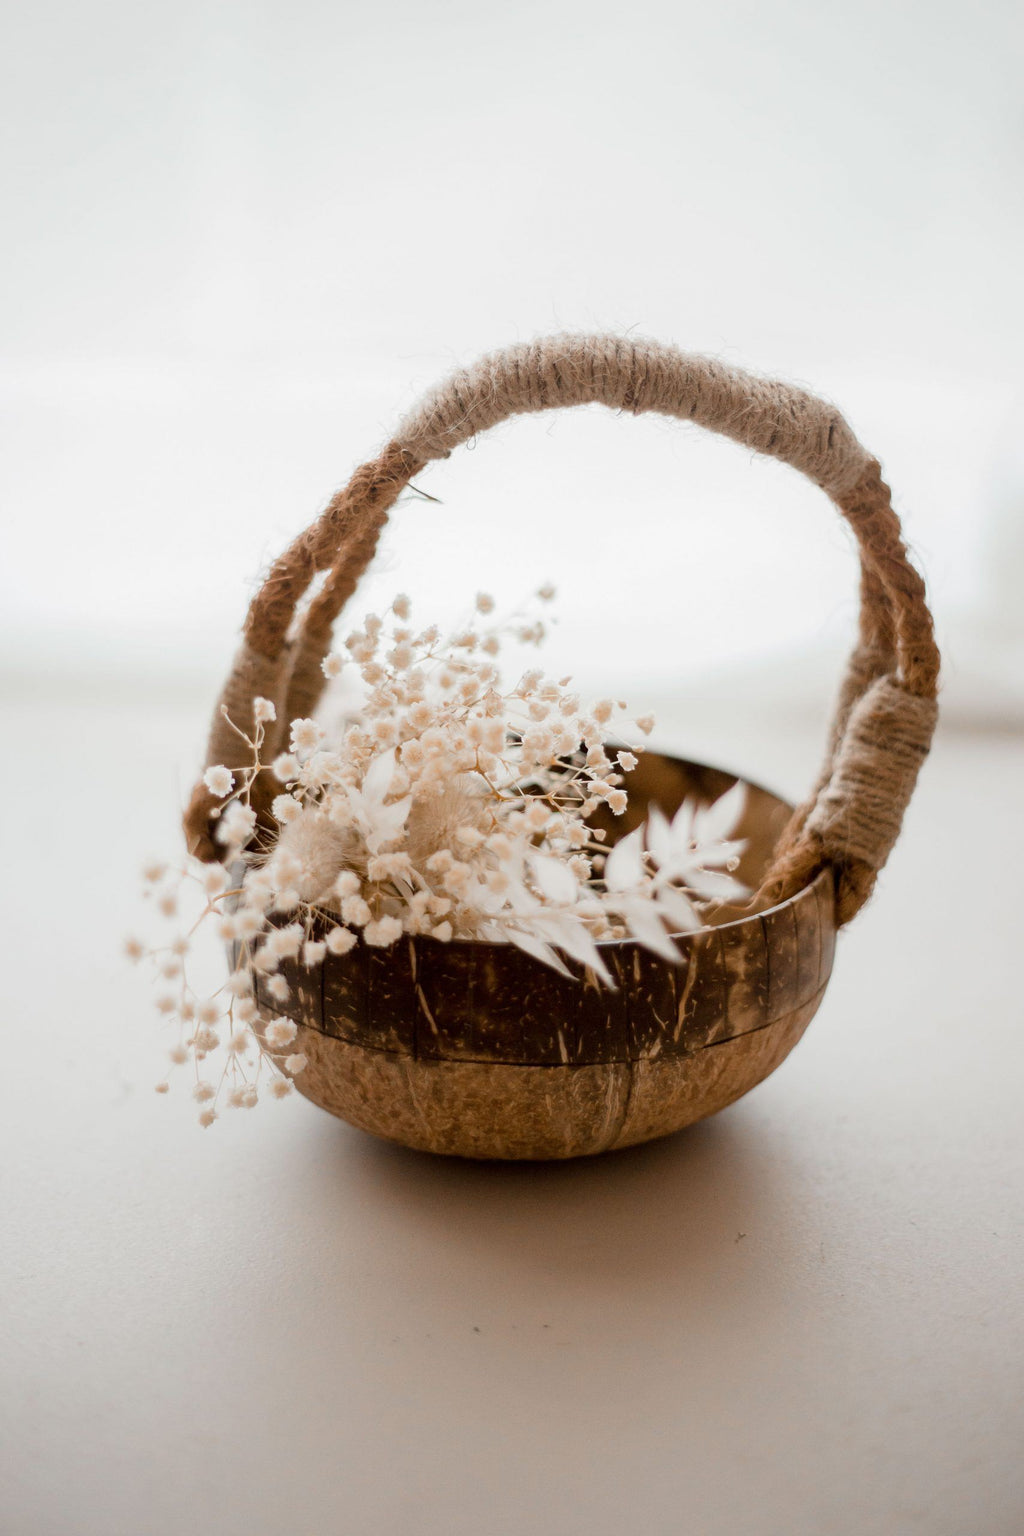 Coconut Basket (Arriving Early Feb) QToys